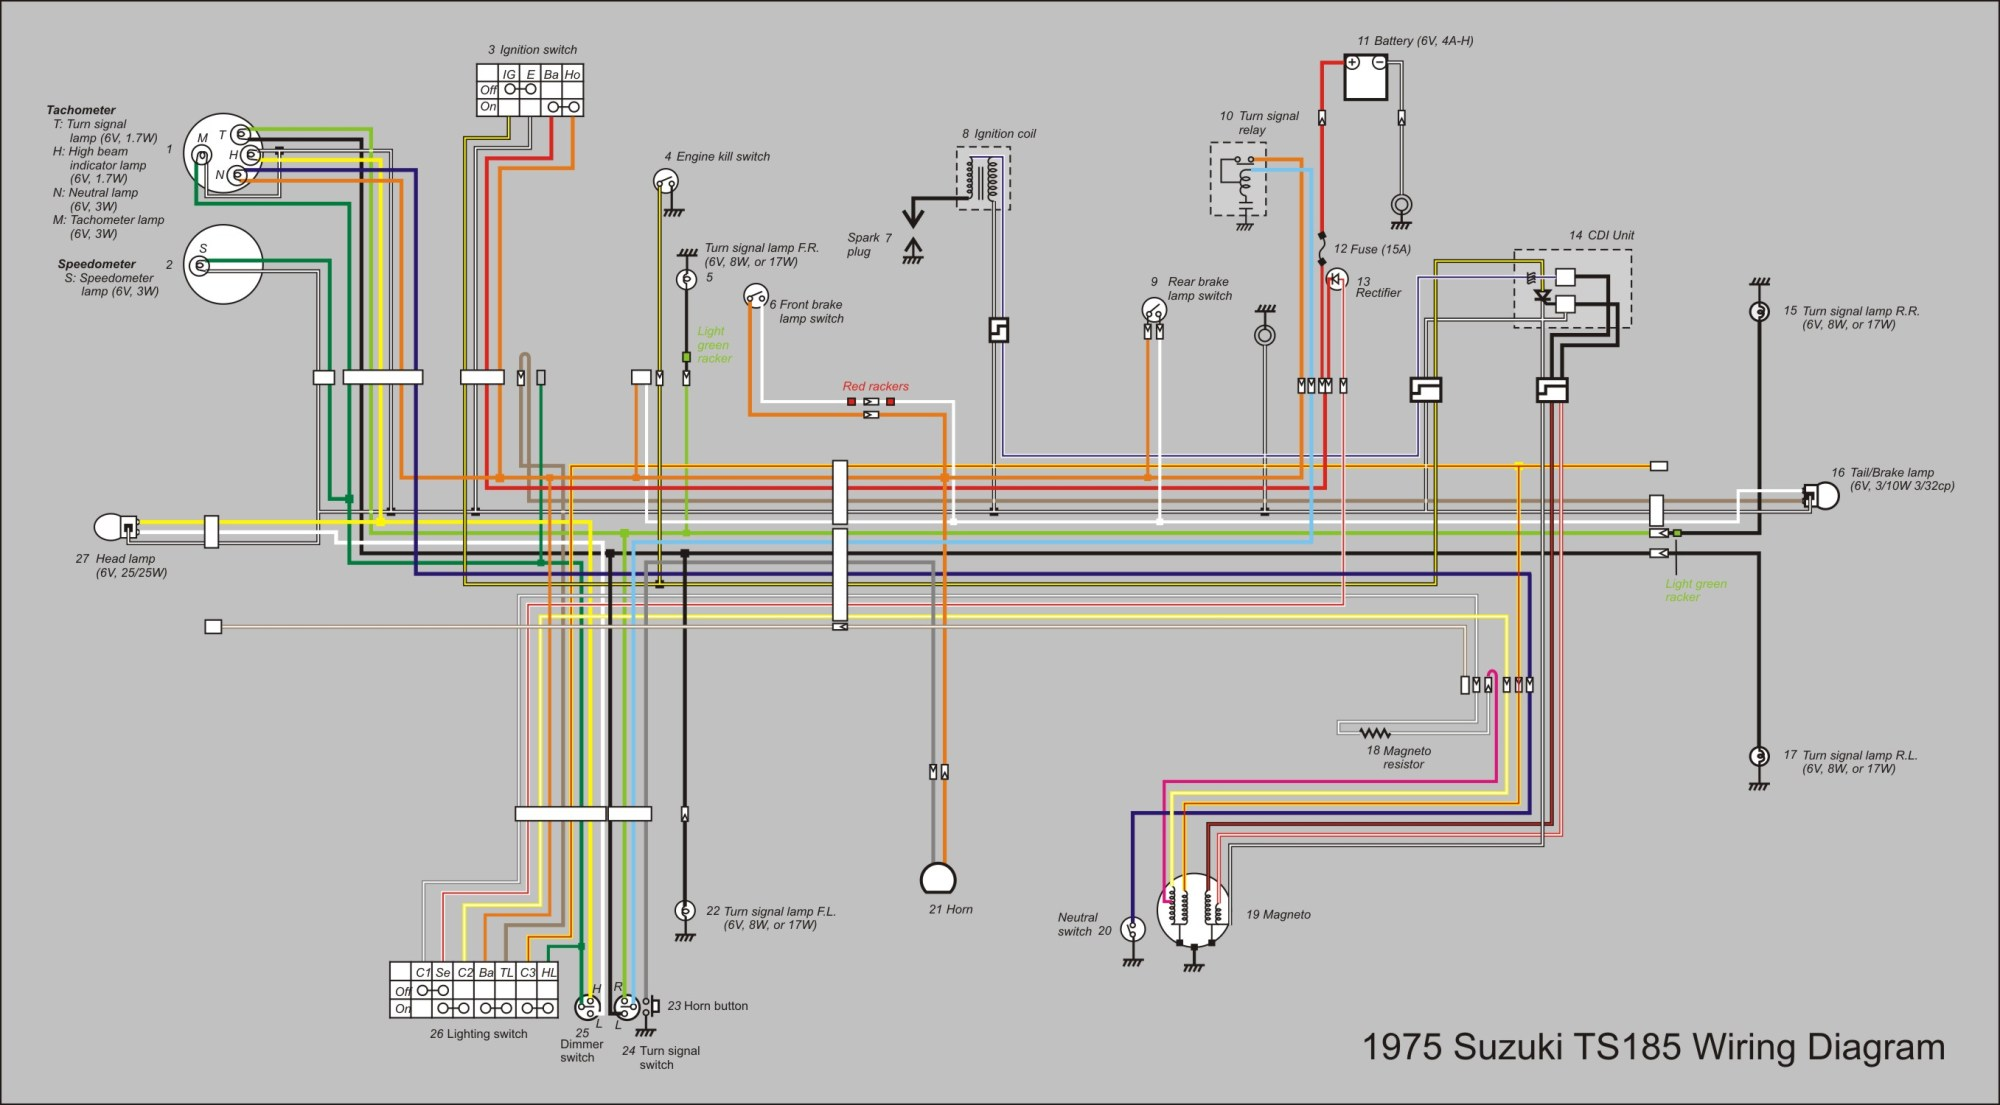 hight resolution of file ts185 wiring diagram new jpg wikimedia commons wiring diagram for subwoofer wiring diagram wiring diagram wiring diagram wiring diagram wiring